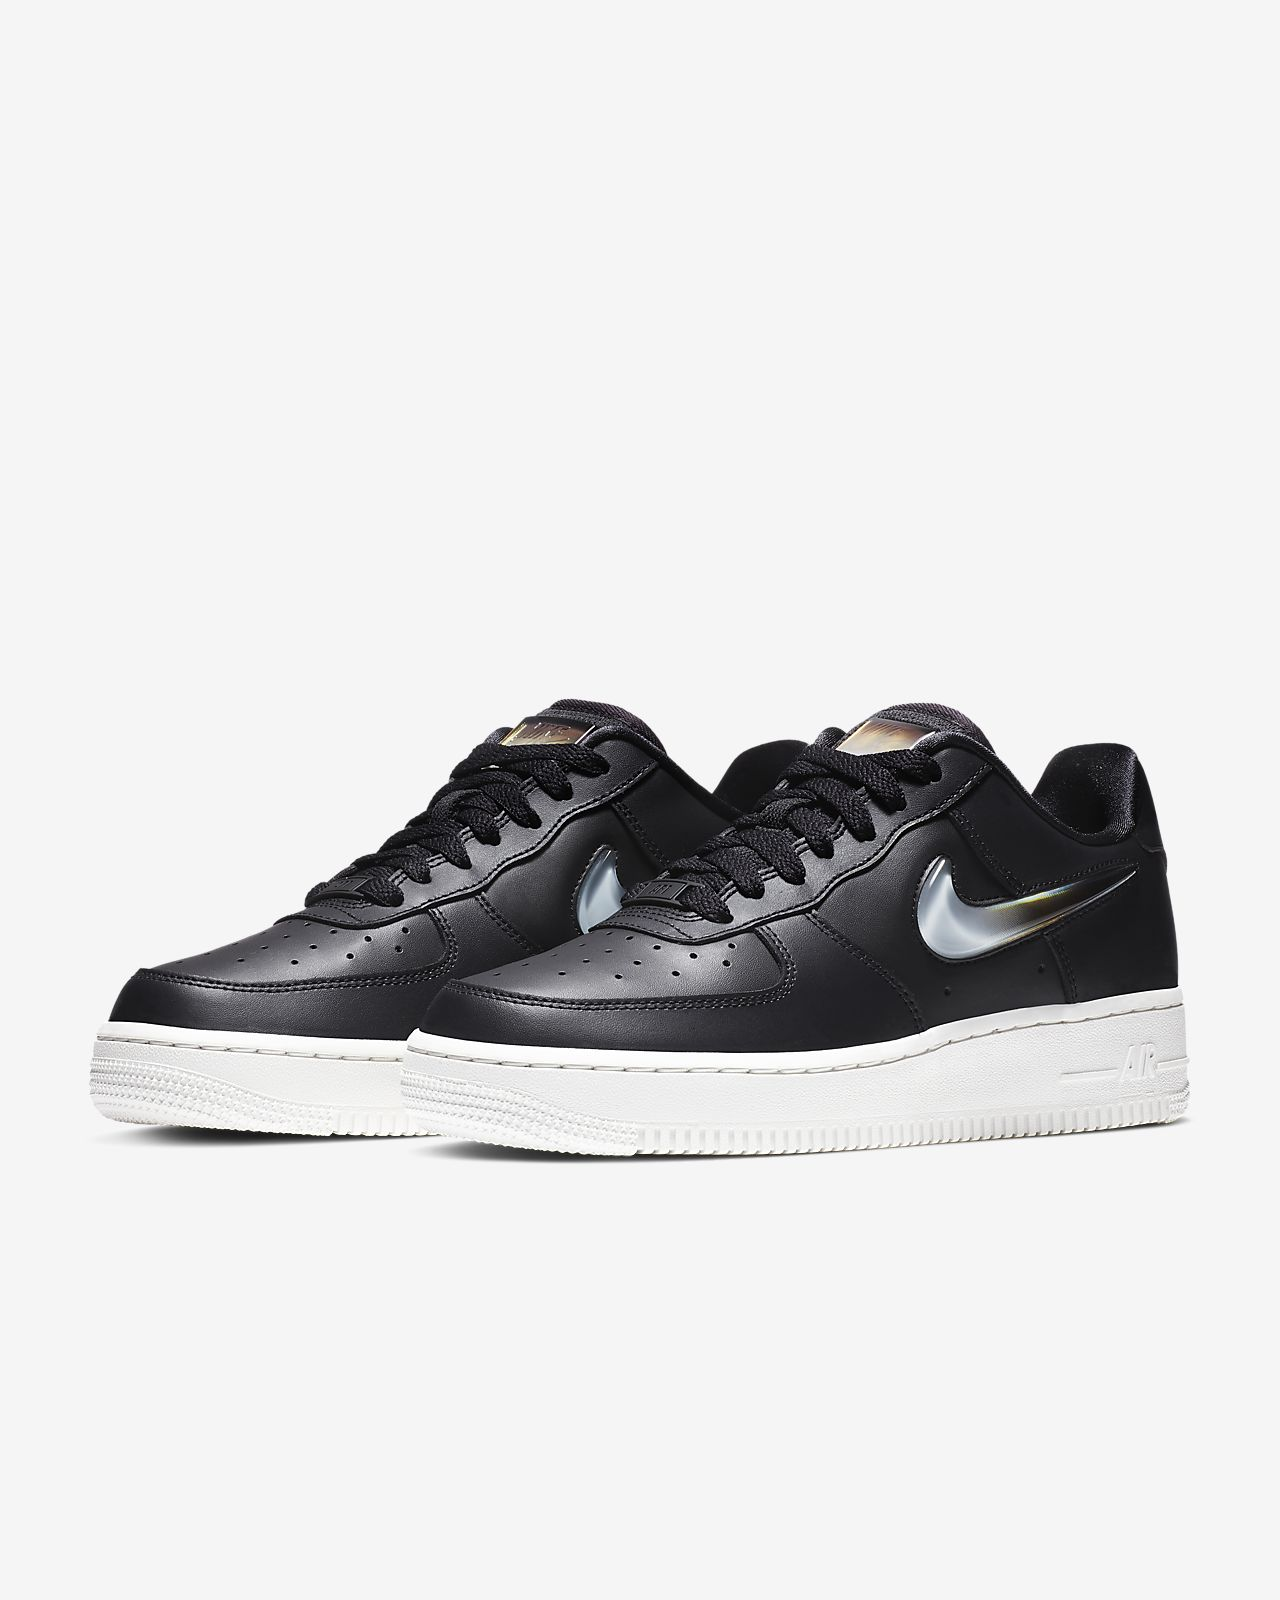 61dcb5b5ea1 Nike Air Force 1  07 SE Premium Women s Shoe. Nike.com ZA